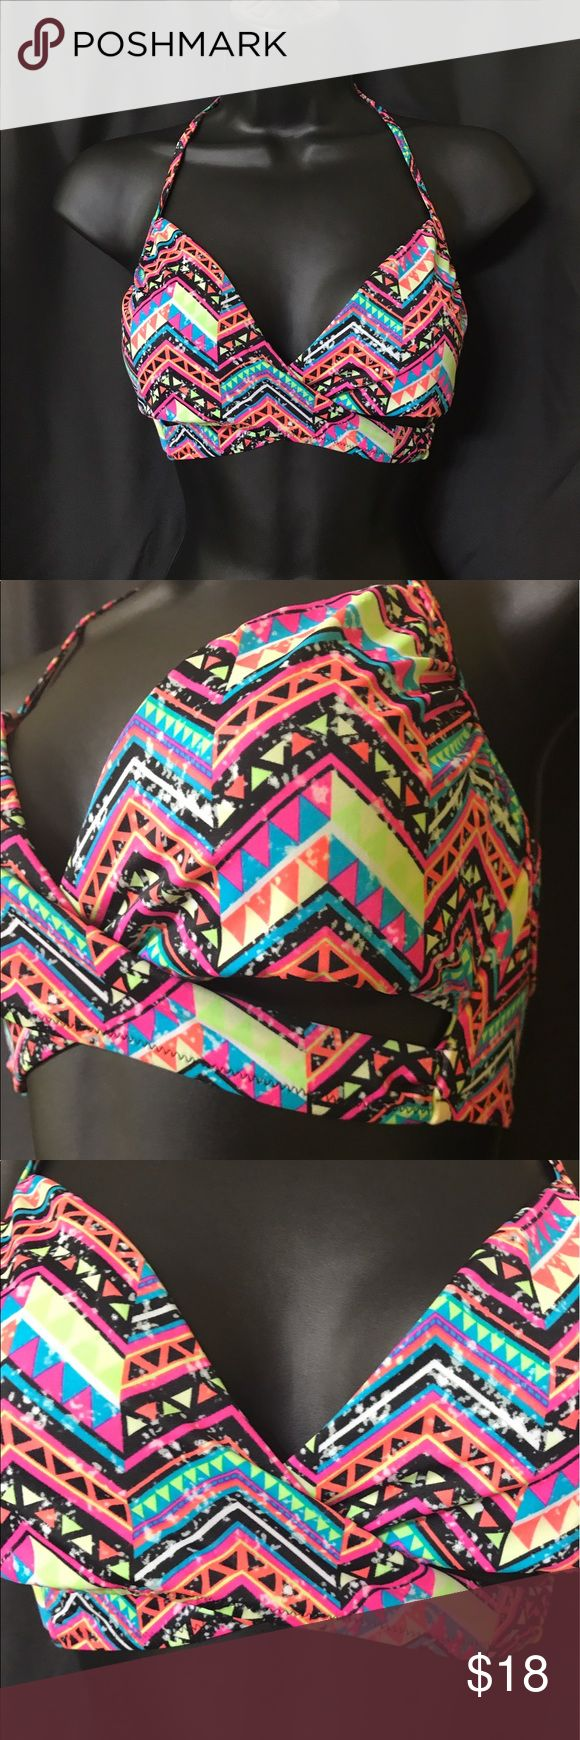 VS Aztec Criss Cross Swim Top In great condition. Rainbow style paint splatter Aztec print. Cross crosses to form small cut outs under the cups. Clasps in the back and ties around the neck PINK Victoria's Secret Swim Bikinis